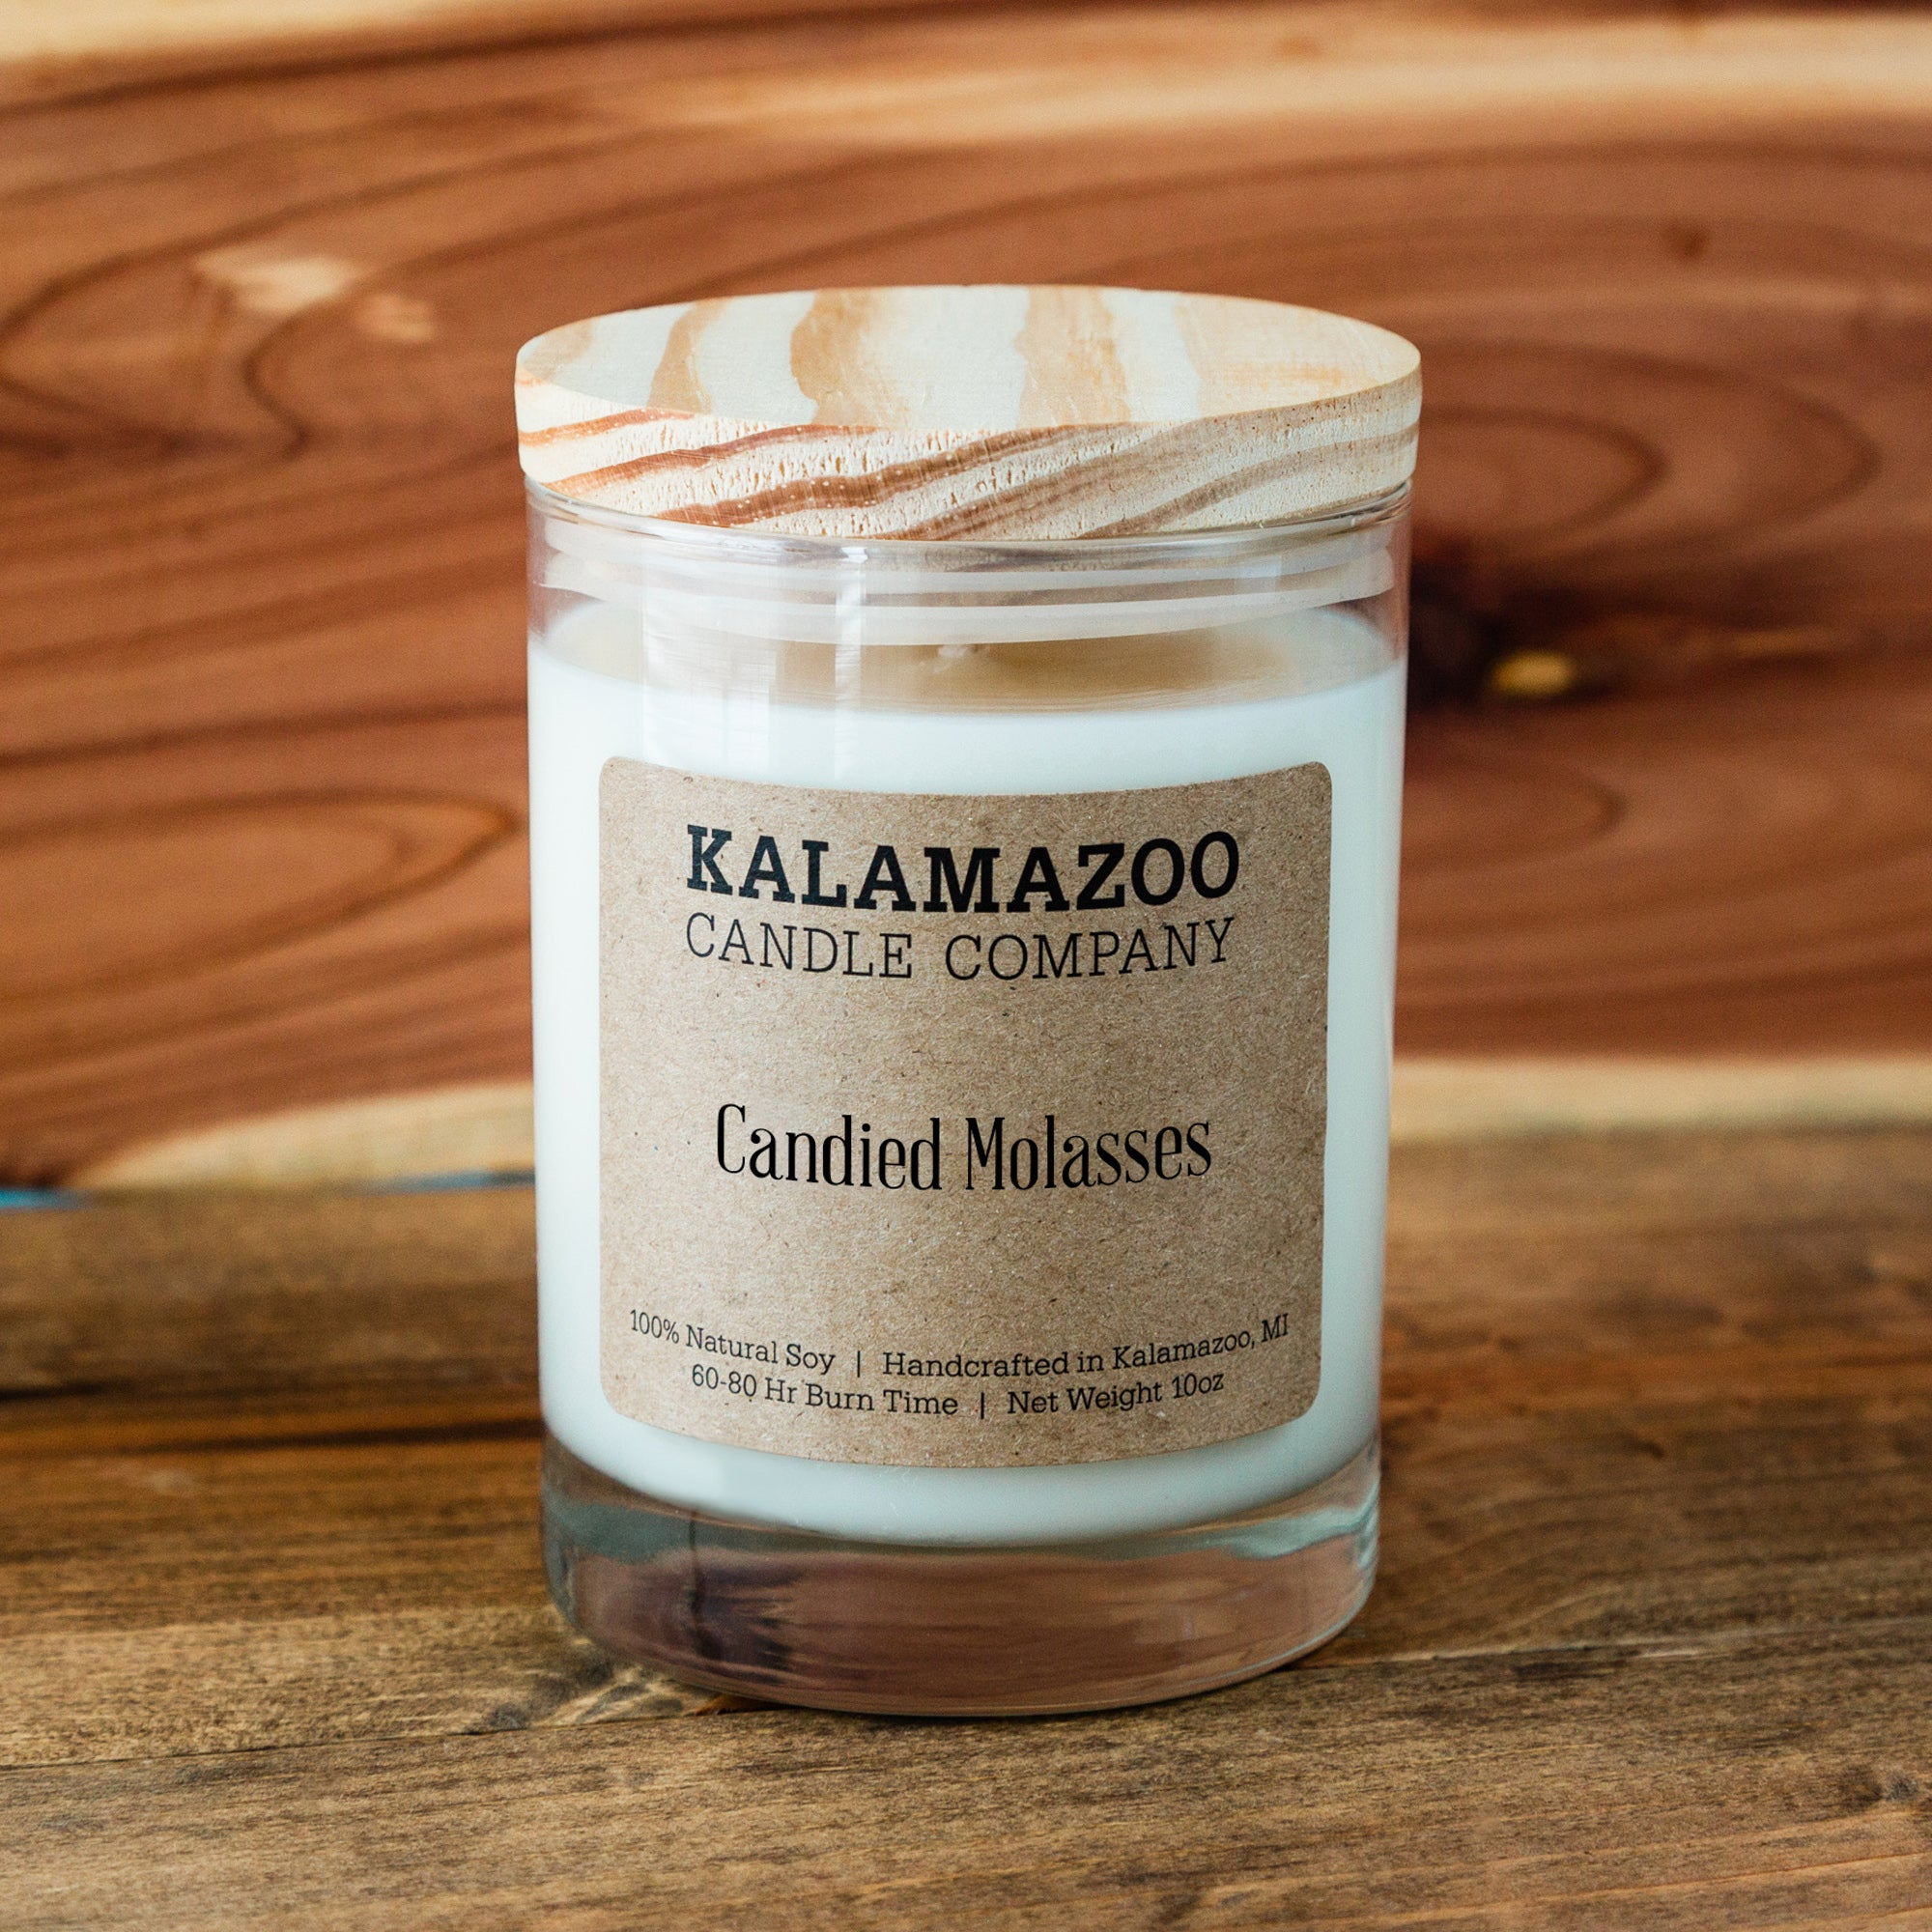 Candied Molasses Candle: 10oz Jar